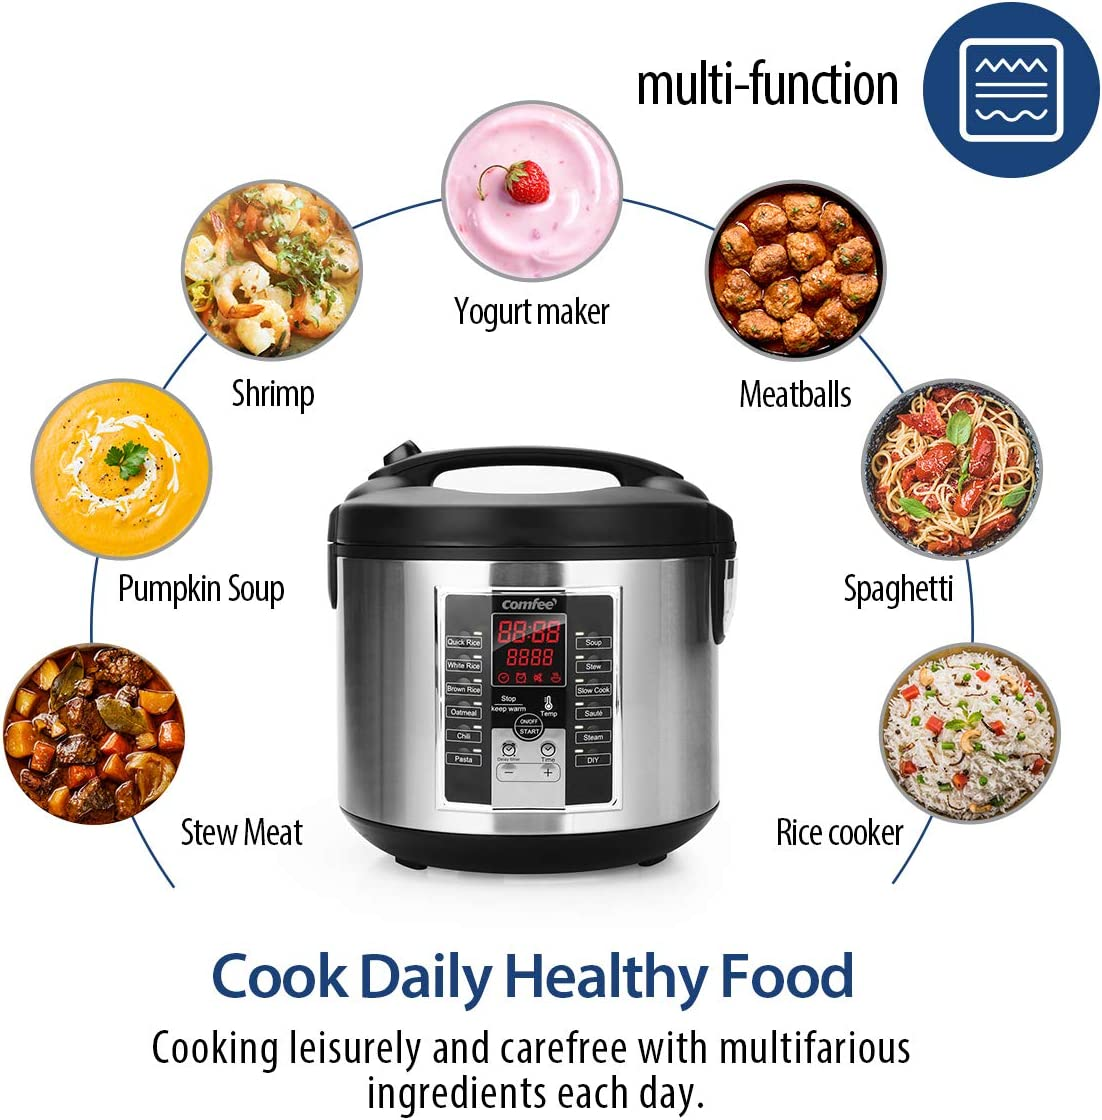 Electric pressure cooker / multi-cooker / slow cooker benefits